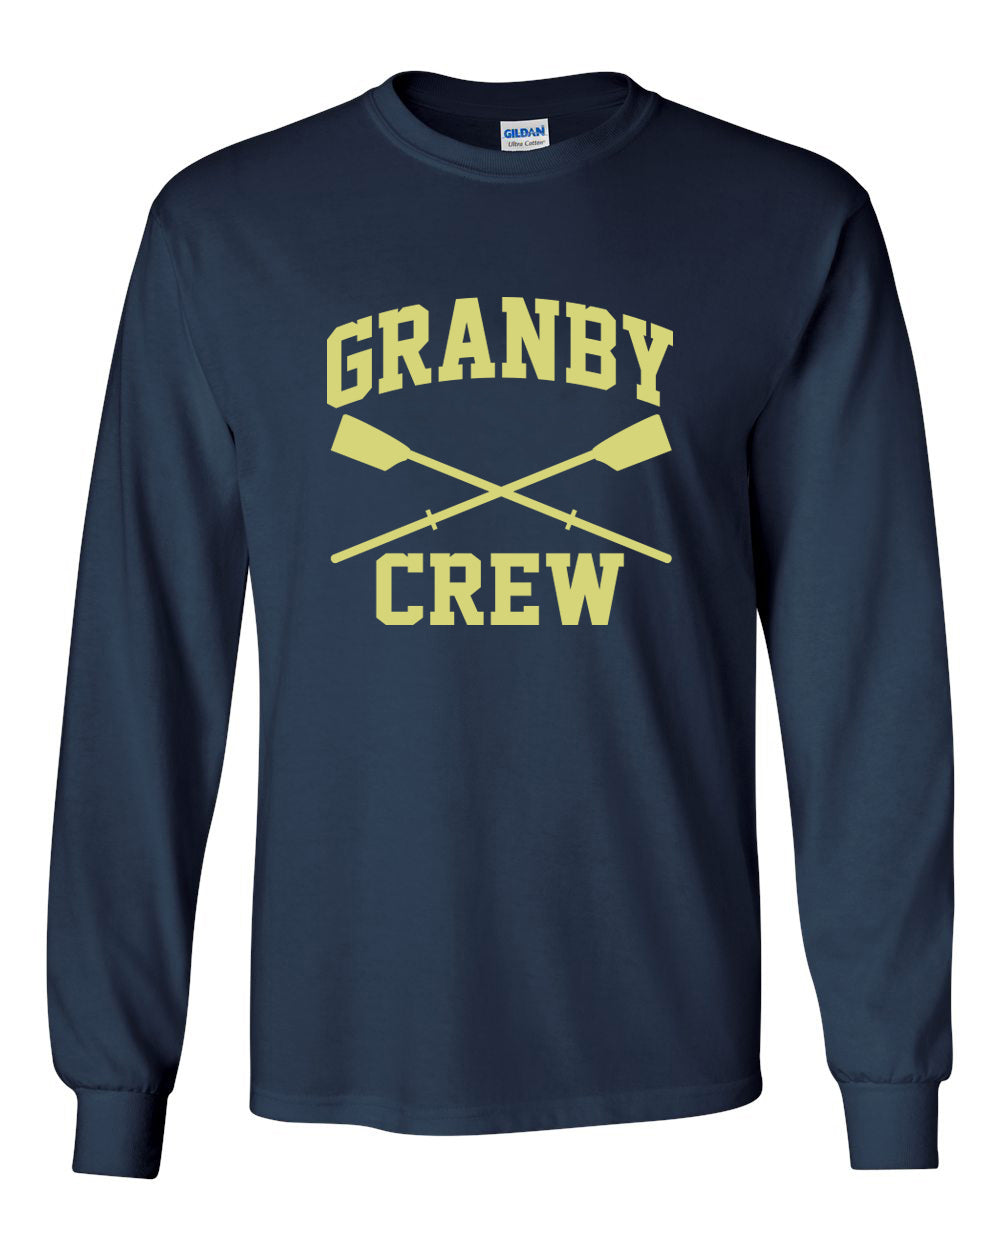 Custom Granby Crew Long Sleeve Cotton T-Shirt